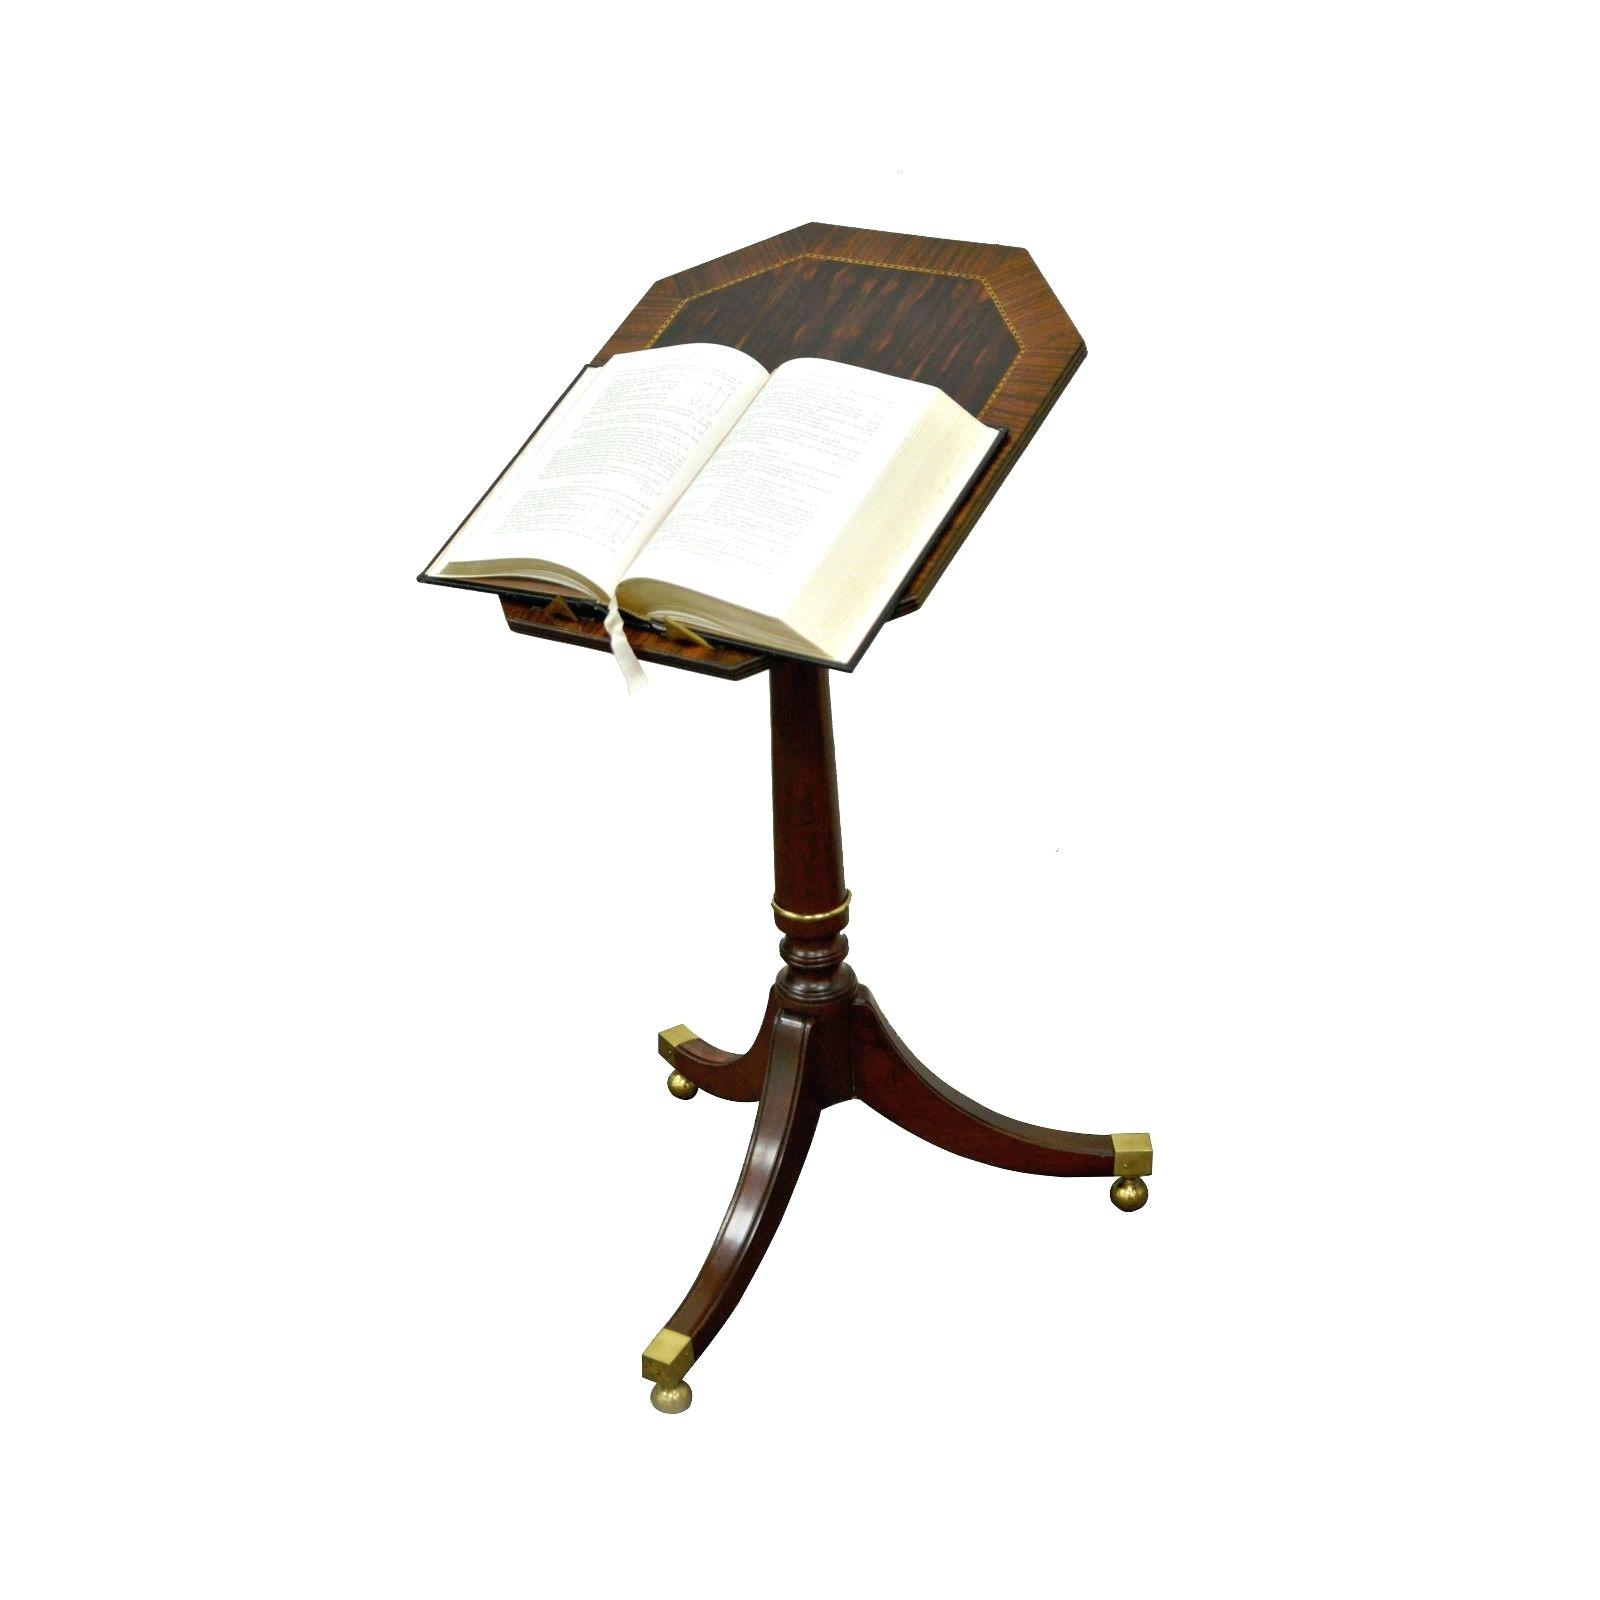 book accent table looknook vintage baker furniture tilt top stand item features beautiful mahogany black lacquer console green tiffany lamp shade home interiors catalog behind